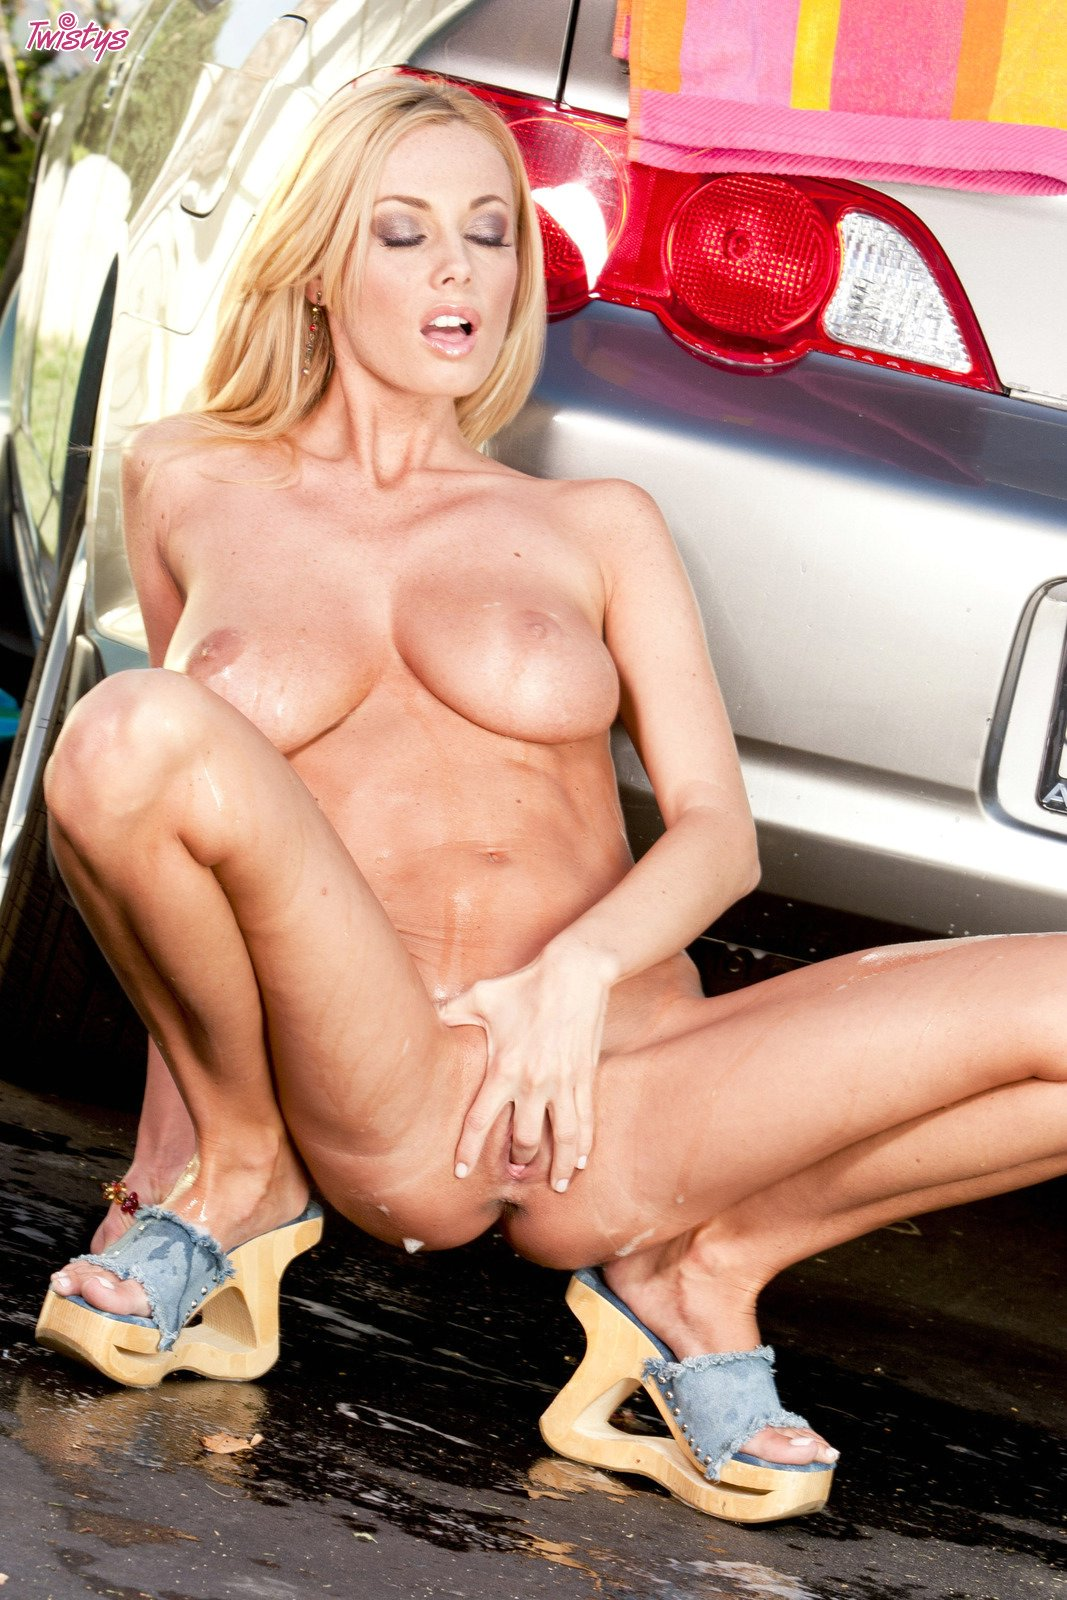 Seldom.. anita blond naked photo phrase and